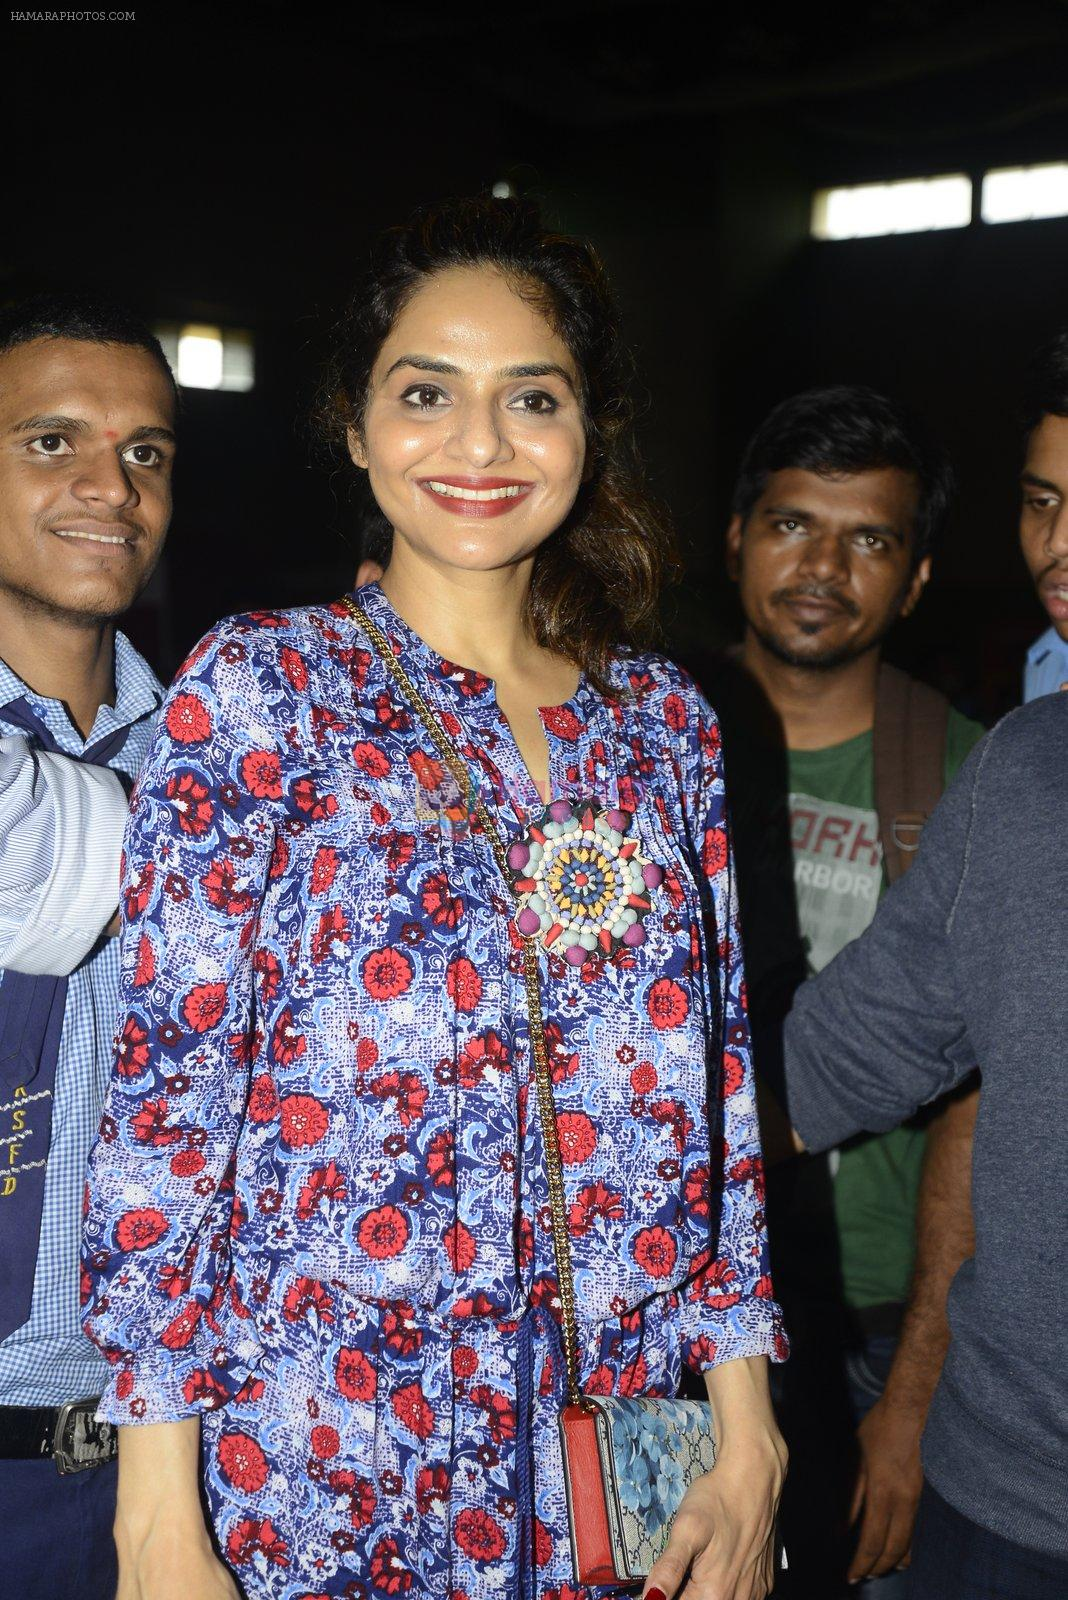 Madhoo at Rouble Nagi and Rotary District 3141 Host World Deaf Day Art Camp and Cultural Activities on 24th Sept 2016